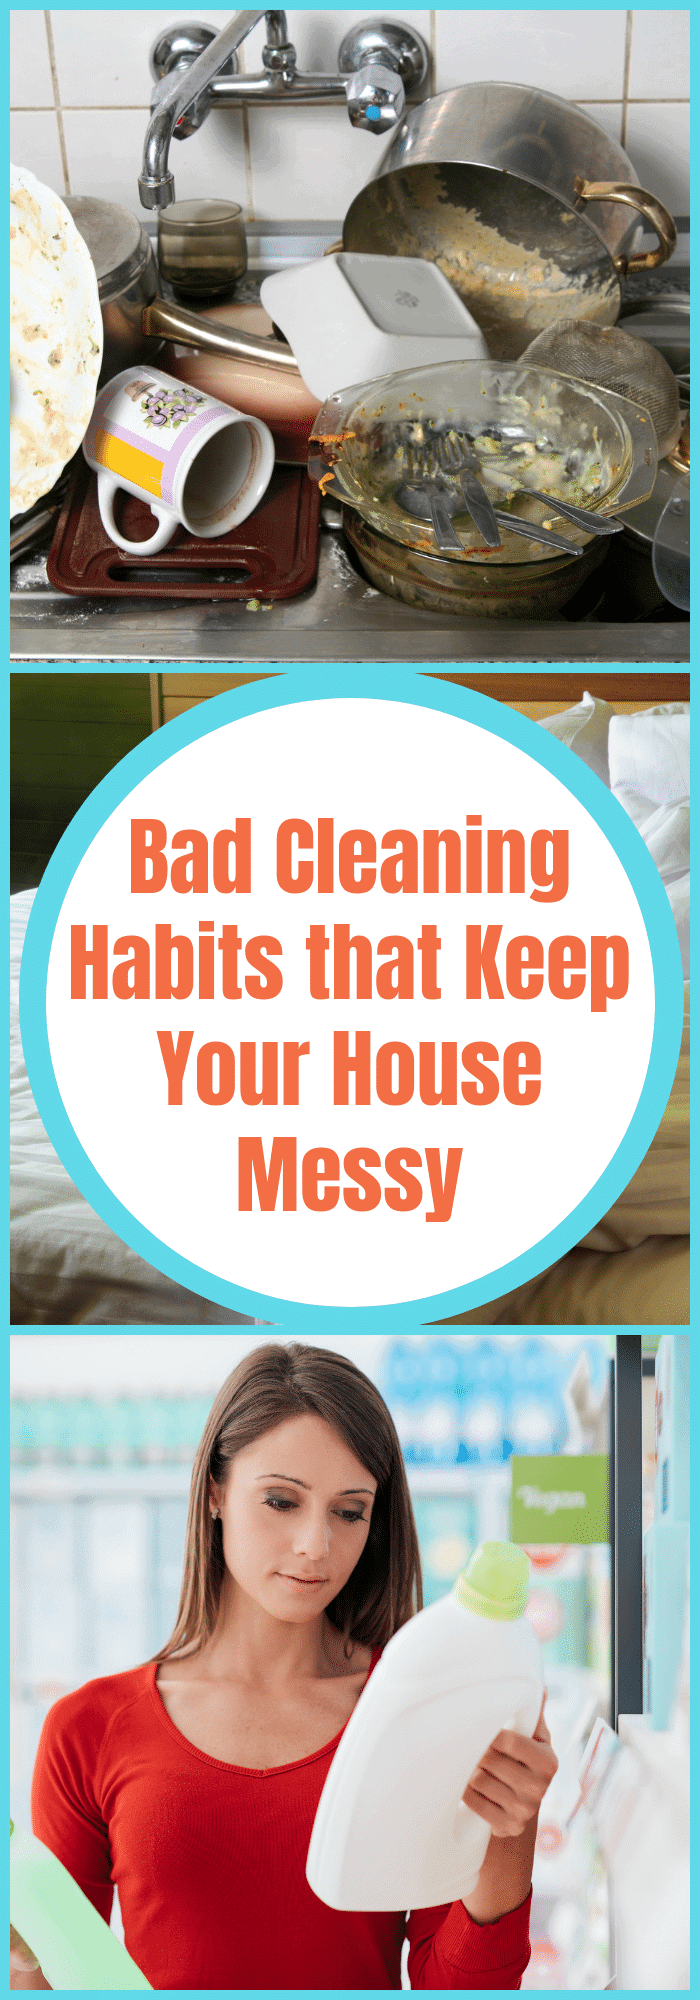 Bad Cleaning Habits that Keep Your House Messy